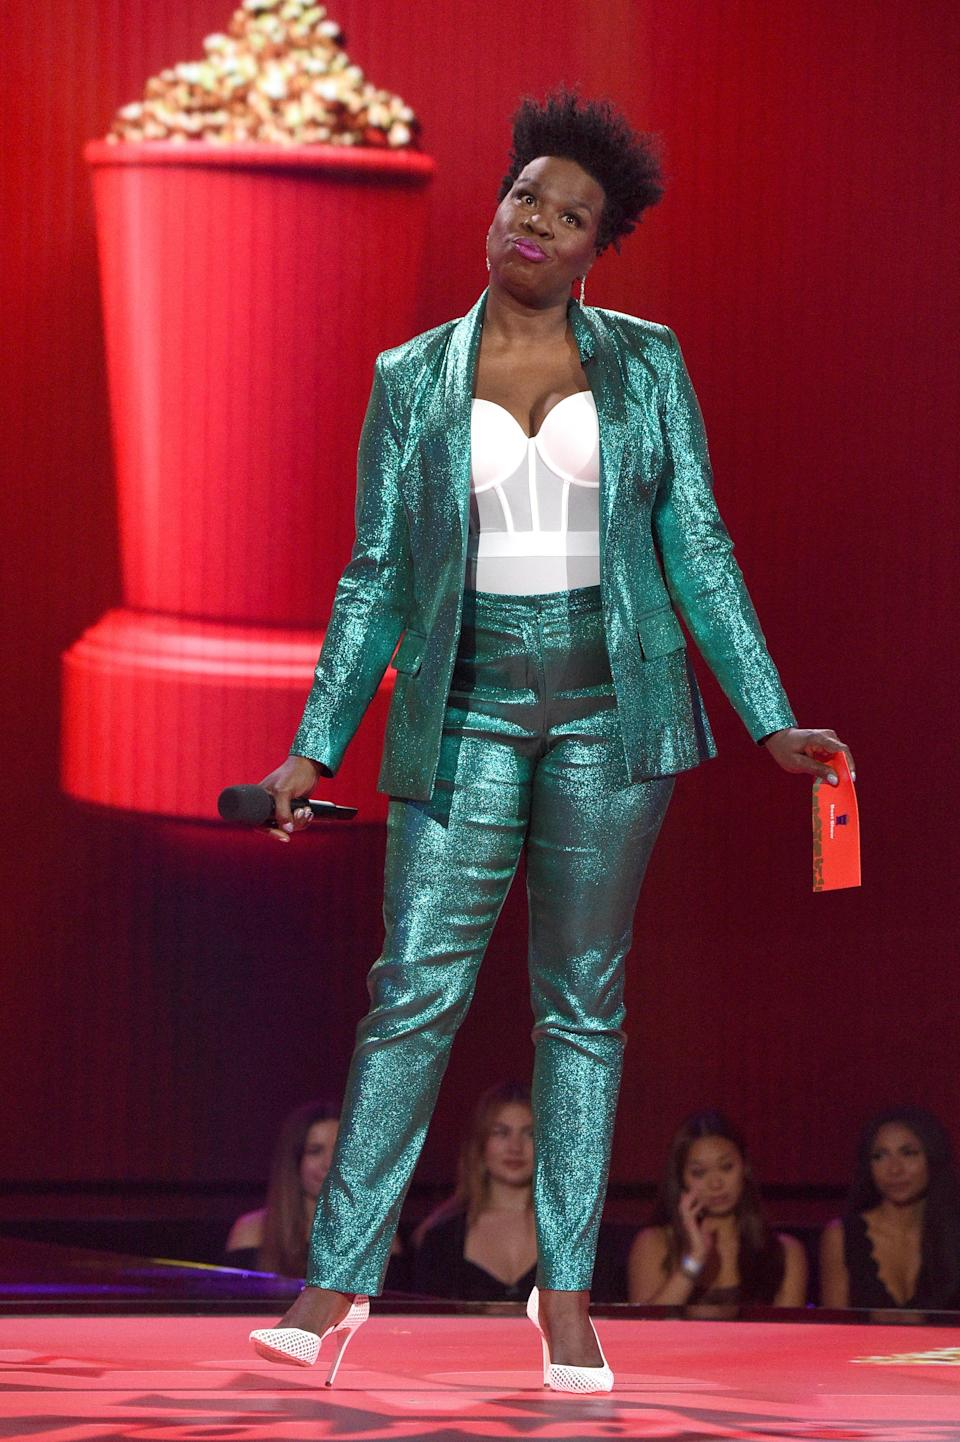 She also rocked a metallic aquamarine pant suit on stage paired with a mesh white bustier.